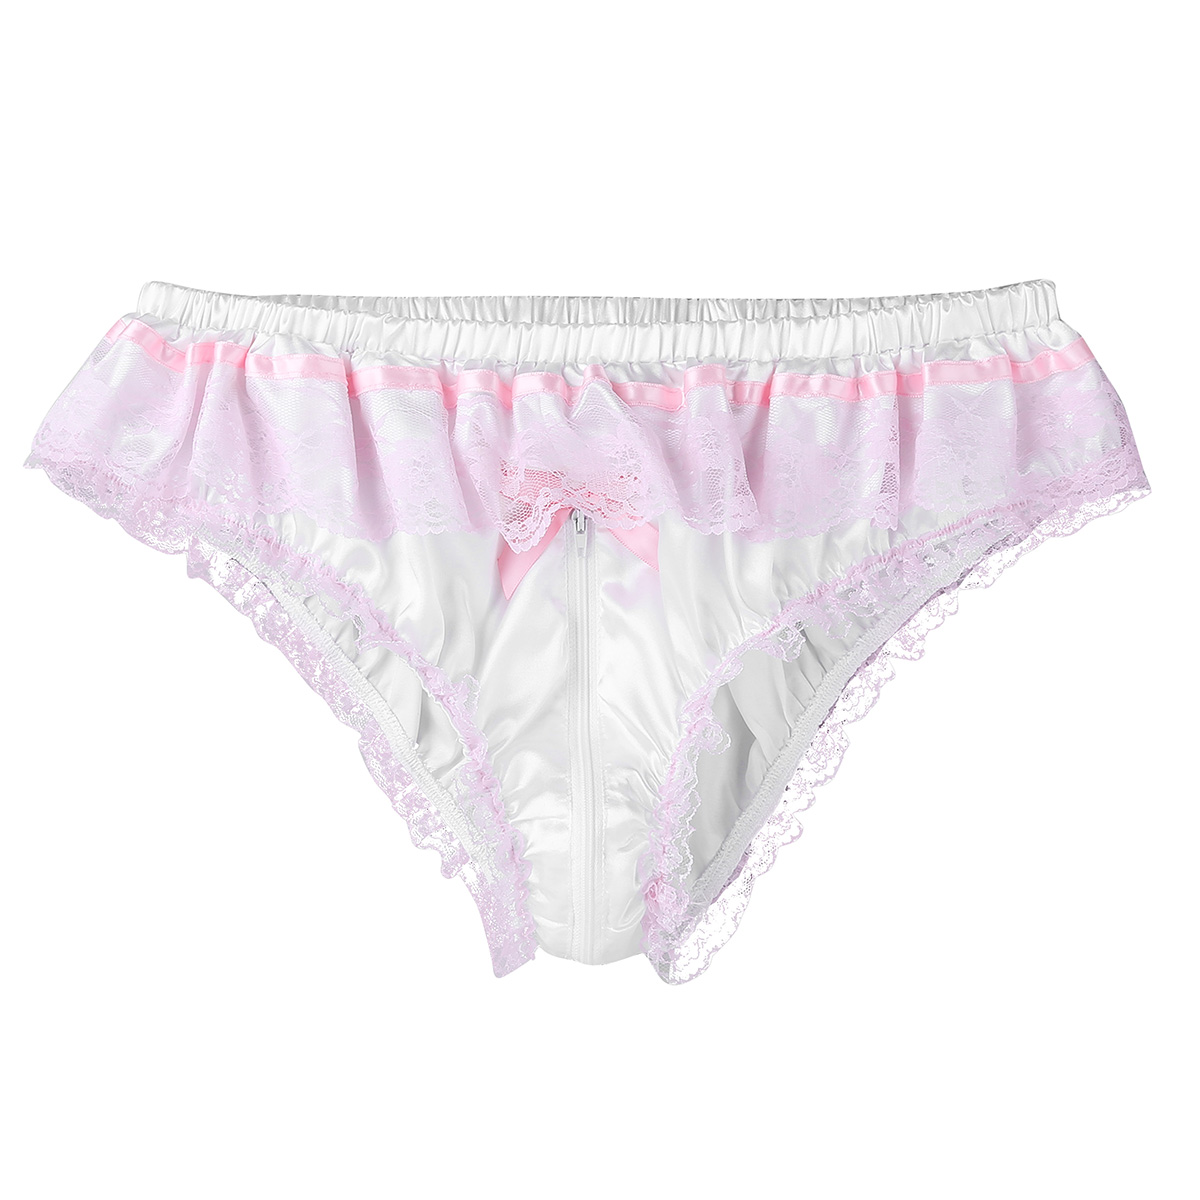 Hand Dyed Eco-Friendly Intimates Ruffley Lingerie Satin Underwear Florid Satin Bloomers in Vintage Pink  Satin Lingerie Ruched Panties